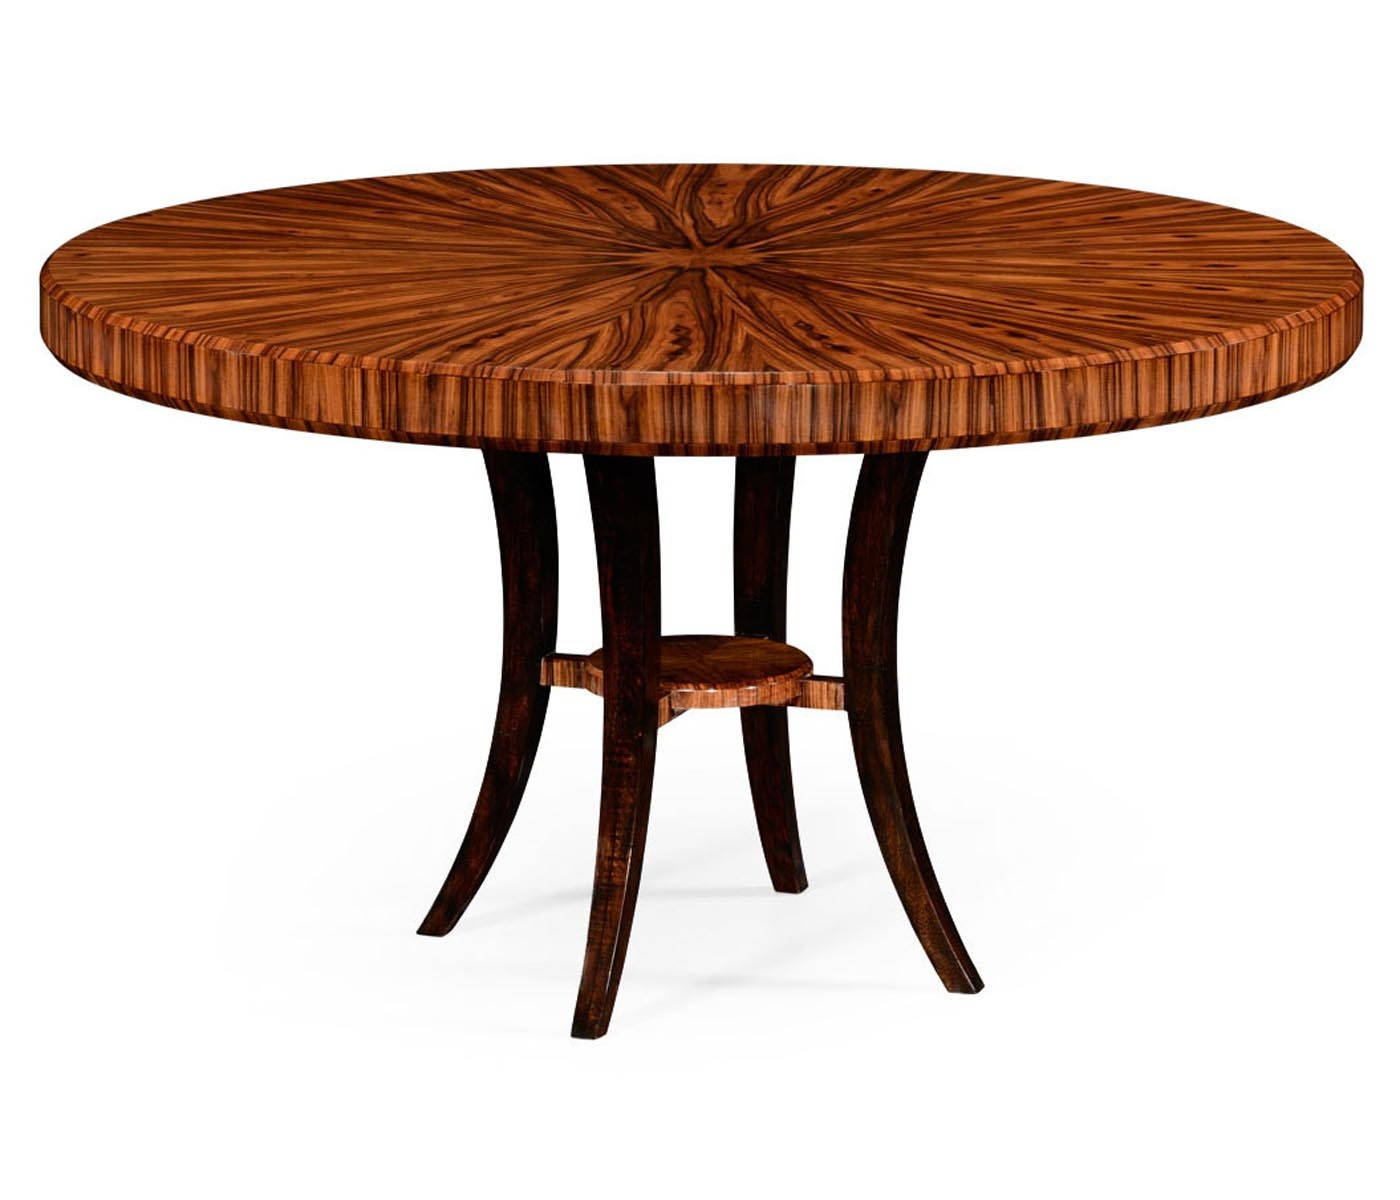 6 seater round dining table swanky interiors. Black Bedroom Furniture Sets. Home Design Ideas